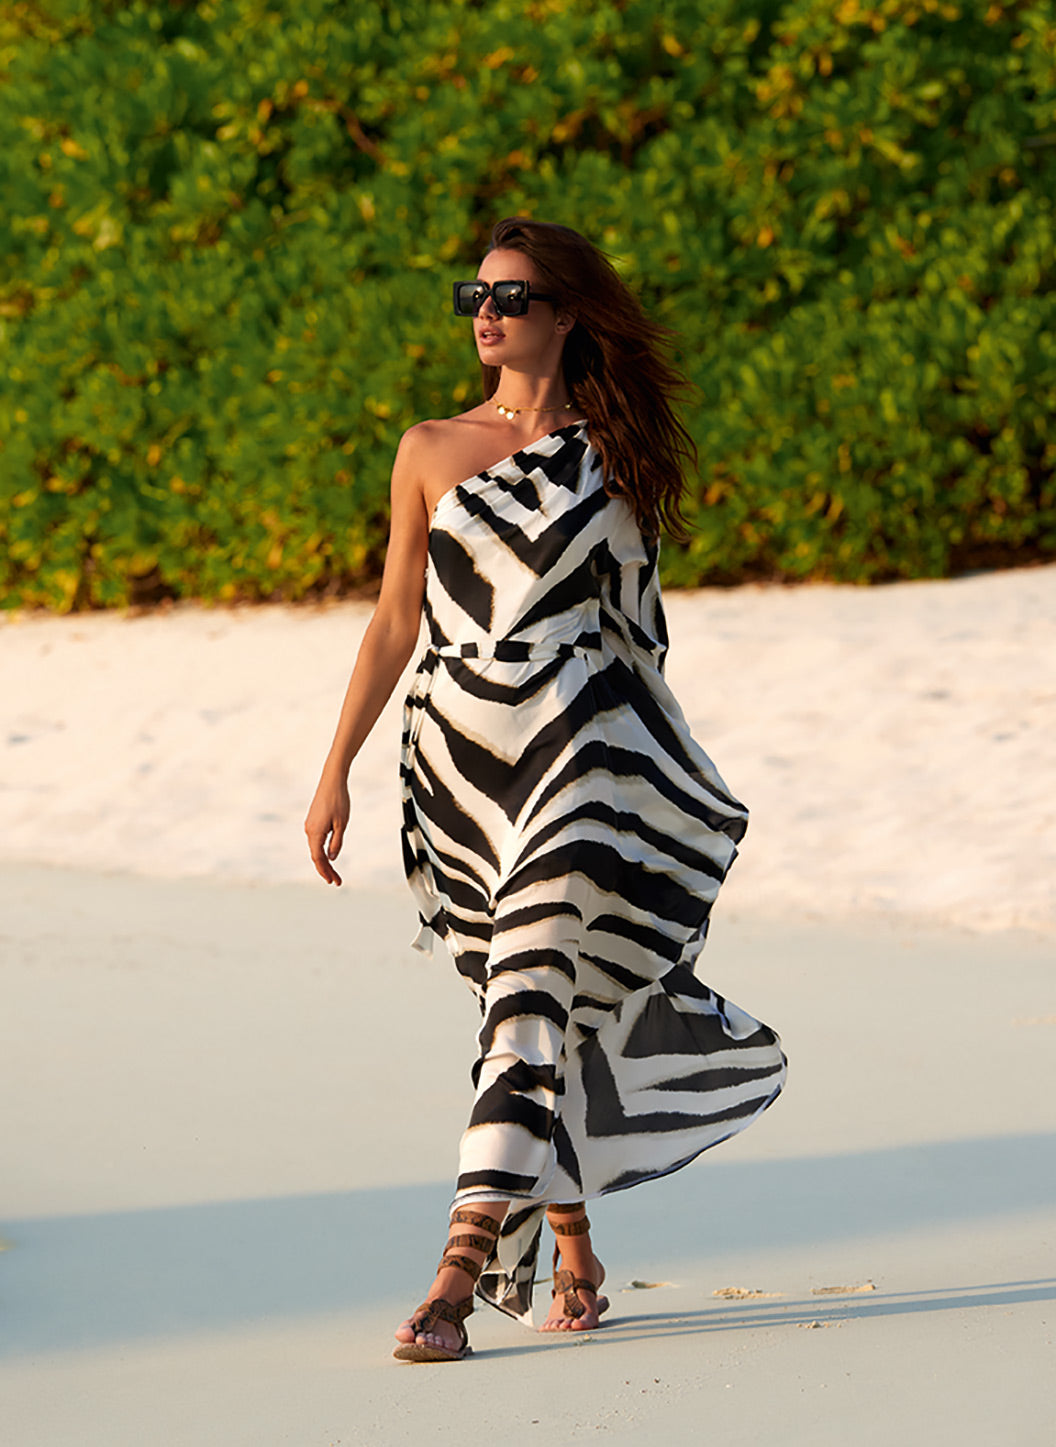 Lauren Zebra One Shoulder Belted Floor Length Dress - Melissa Odabash Beachwear